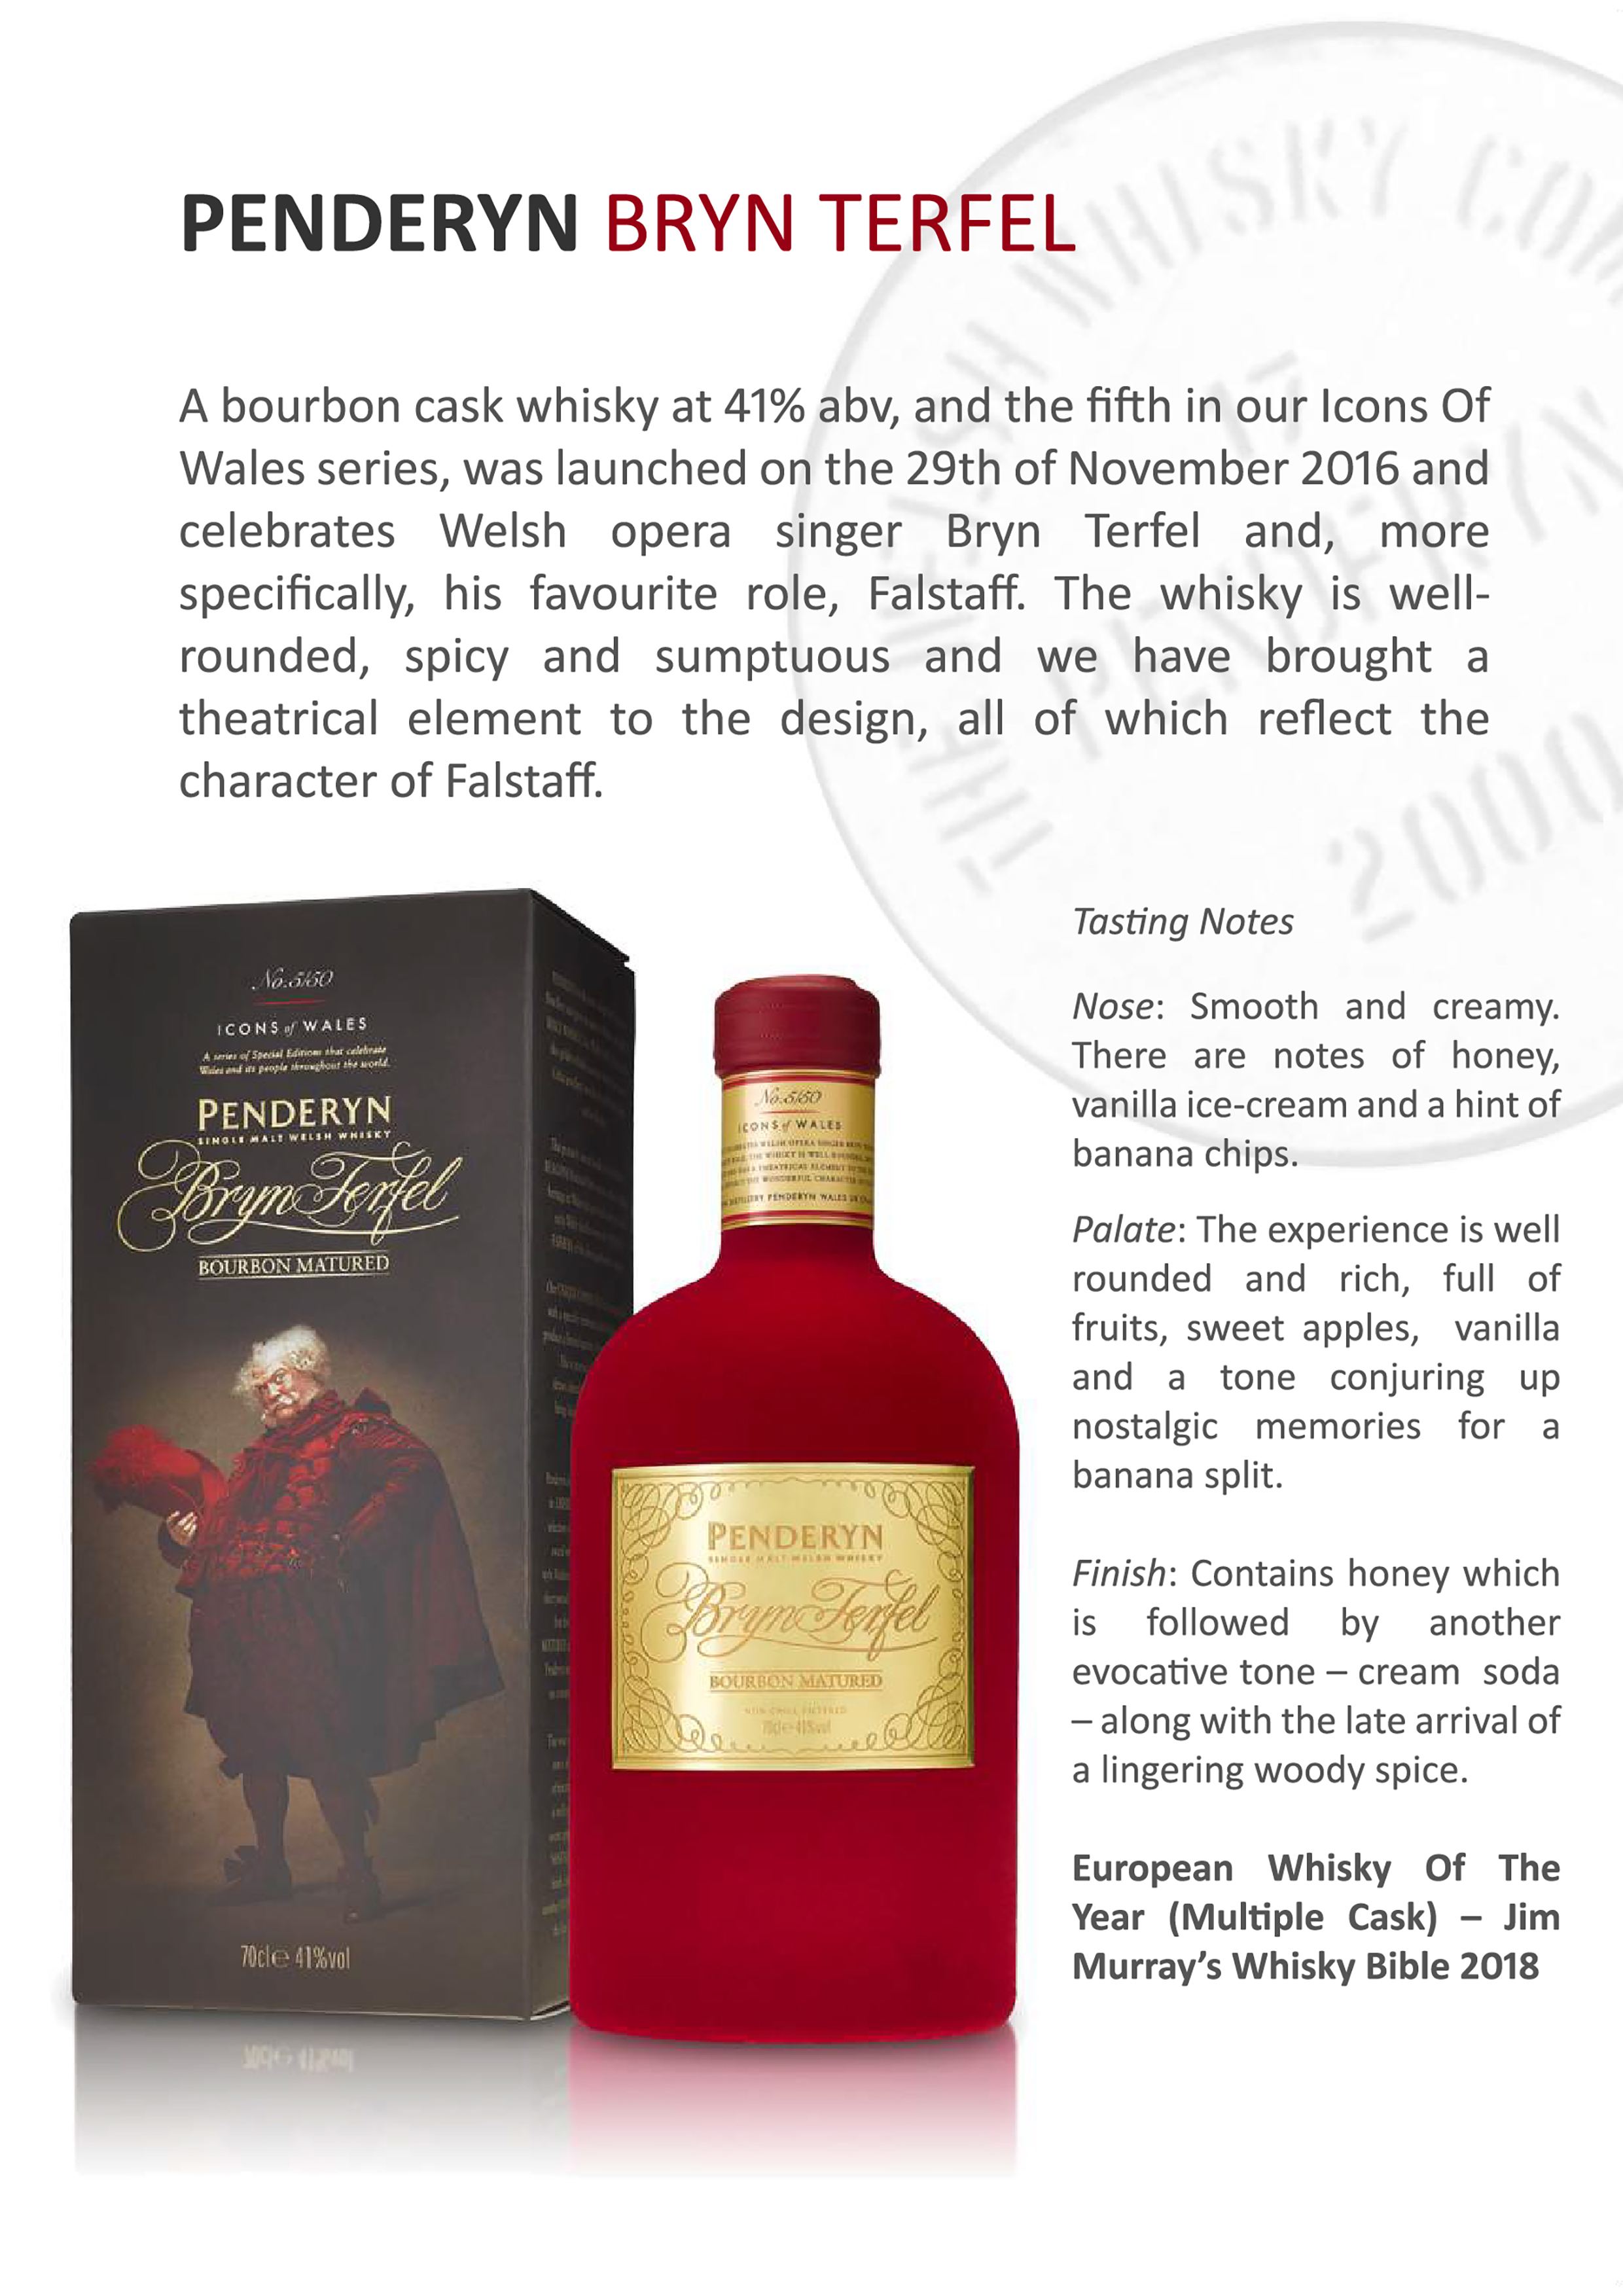 Penderyn Bryb Terfel Single Malt Welsh Whisky Tasting Note